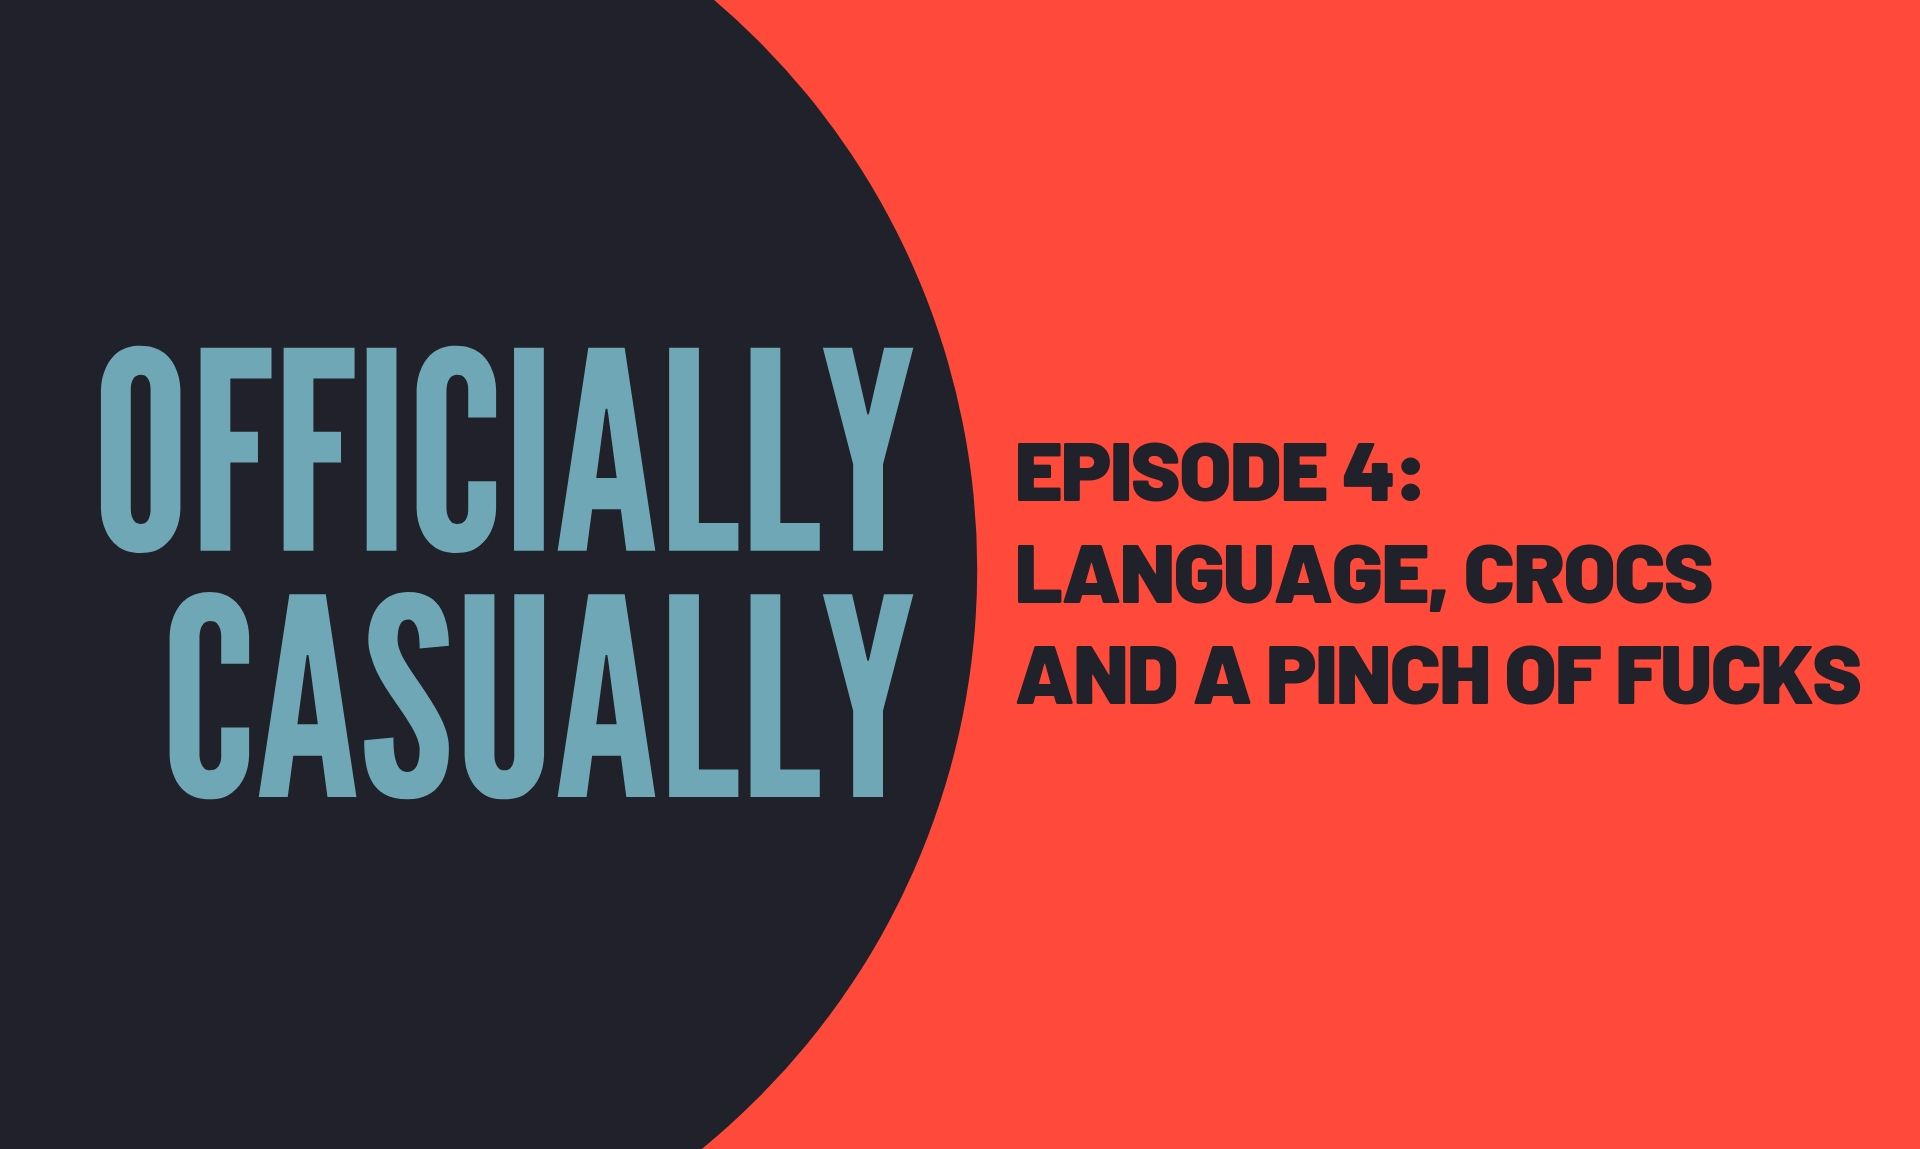 #4 EPISODE - LANGUAGE, CROCS AND A PINCH OF FUCKS